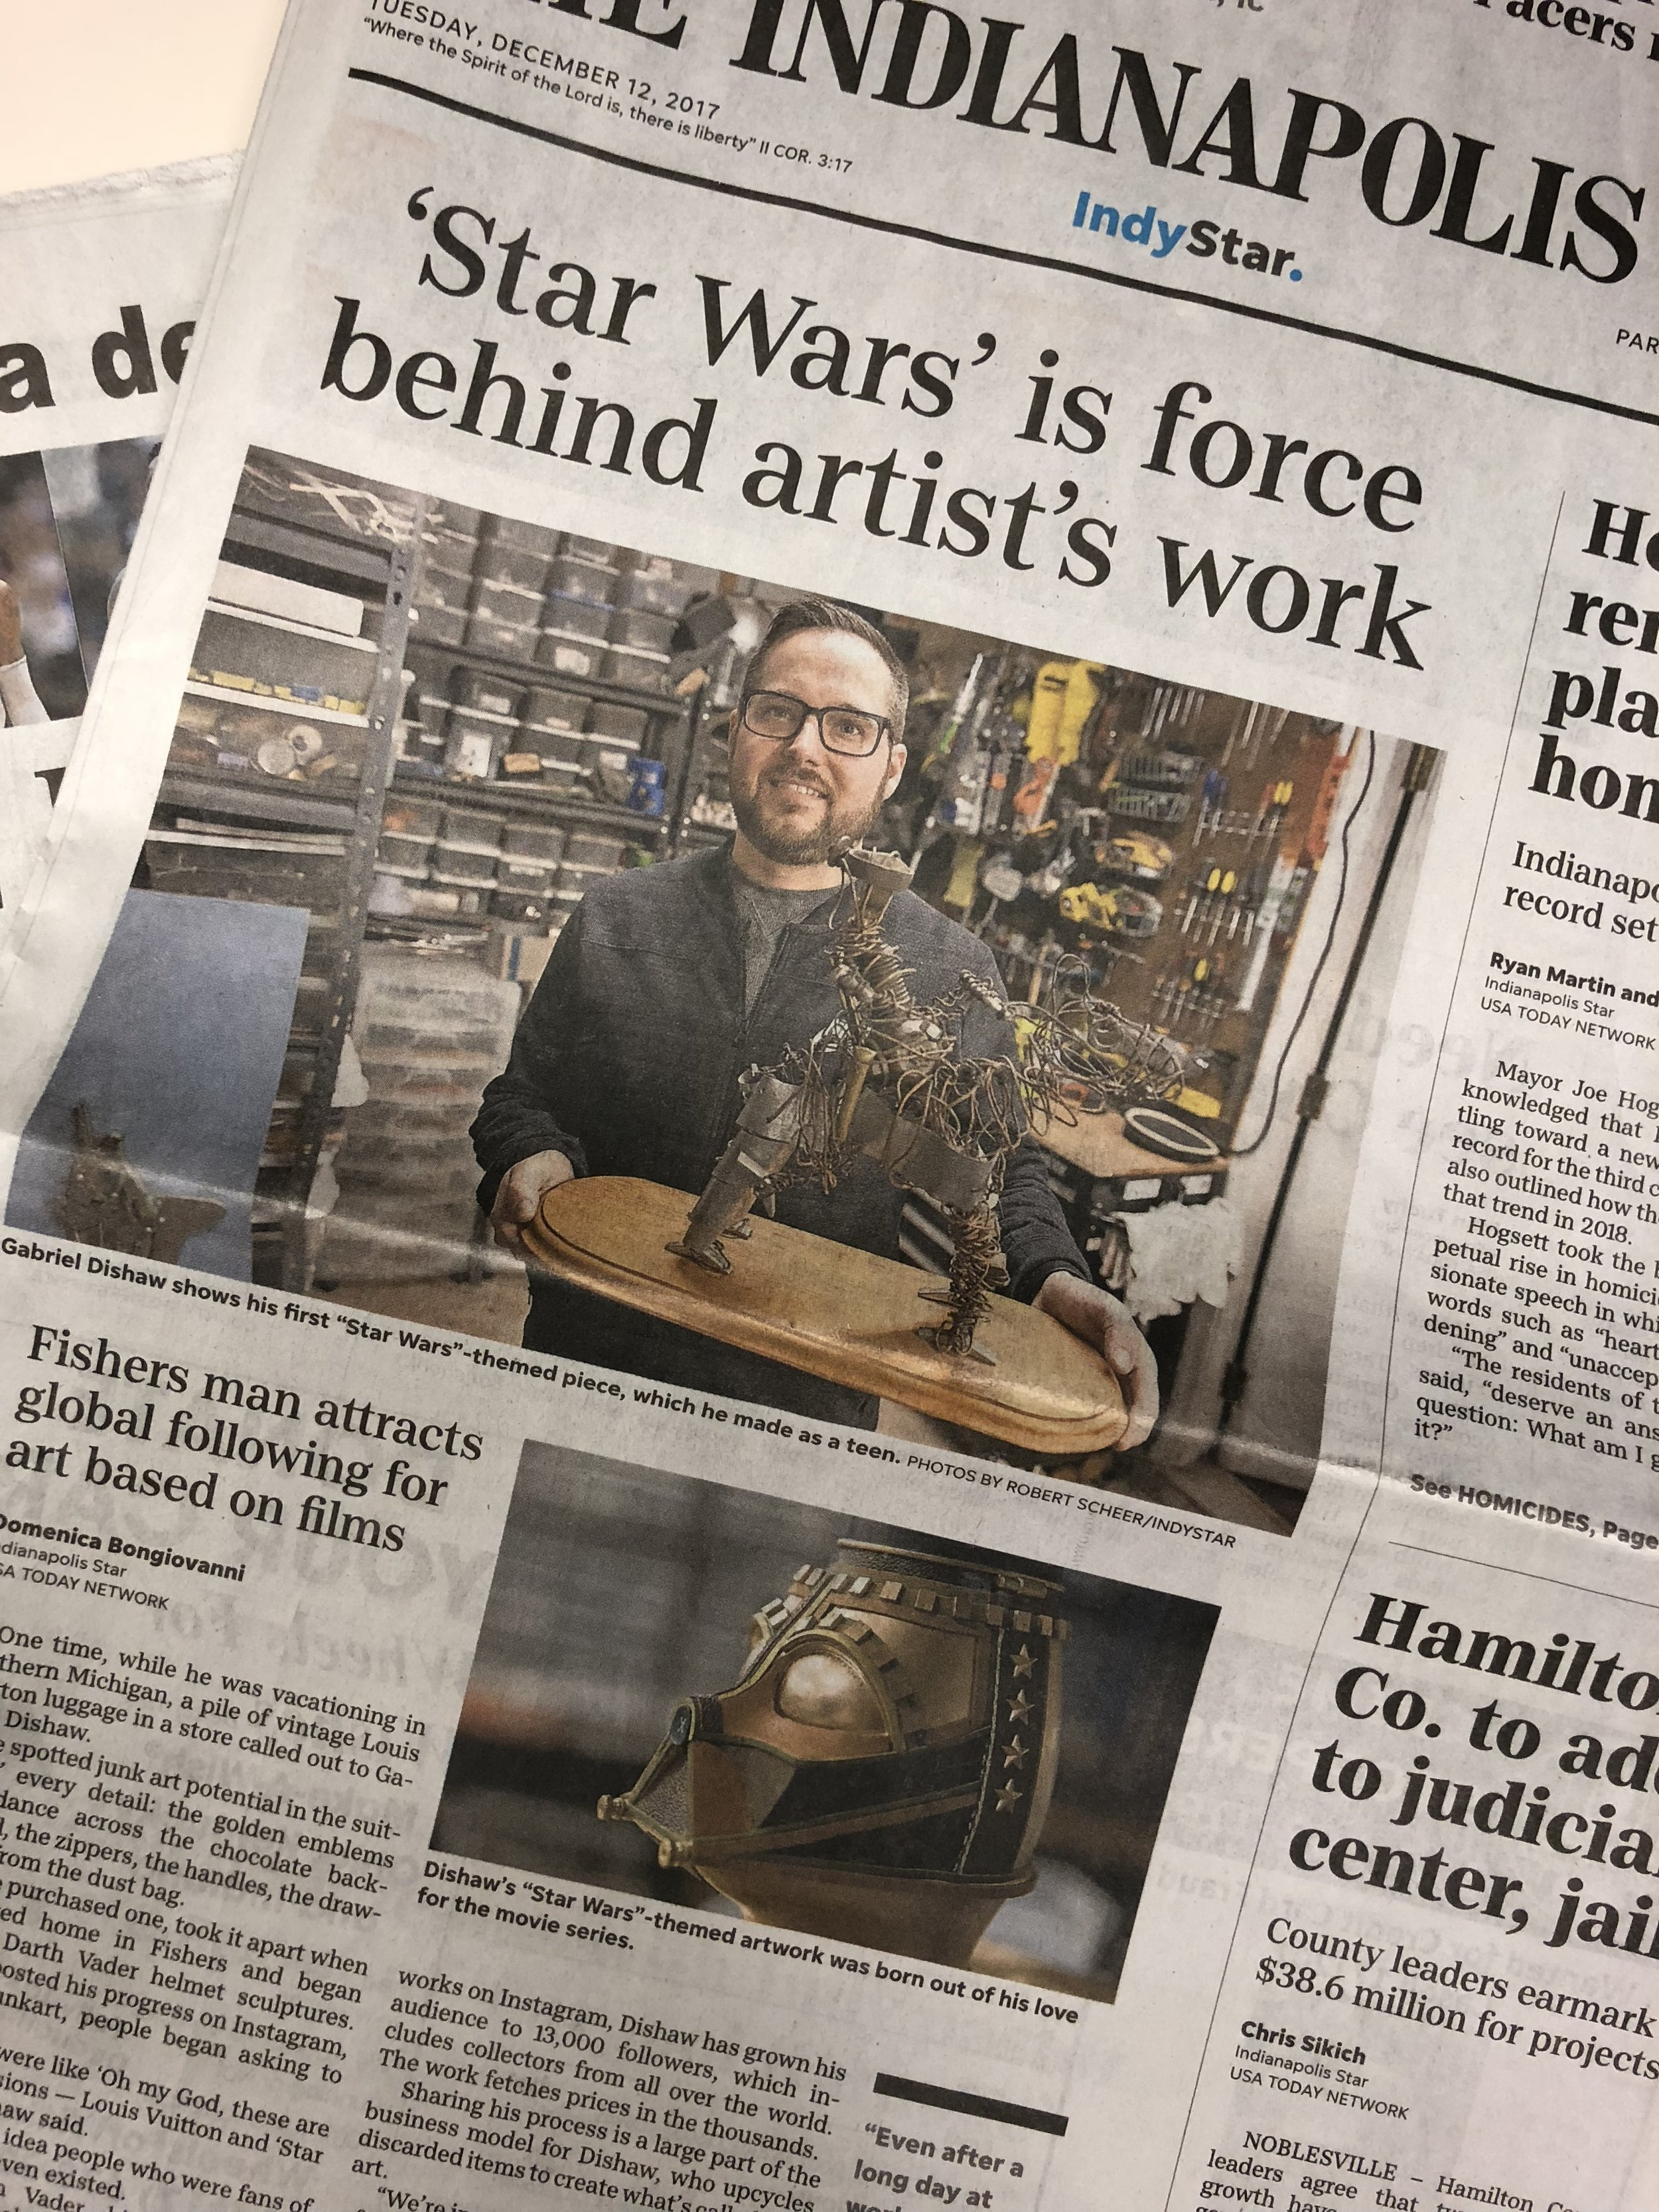 'Star Wars' is force behind artist's work - Indianapolis Star December 12th 2017 Written by Domenica Bongiovanni